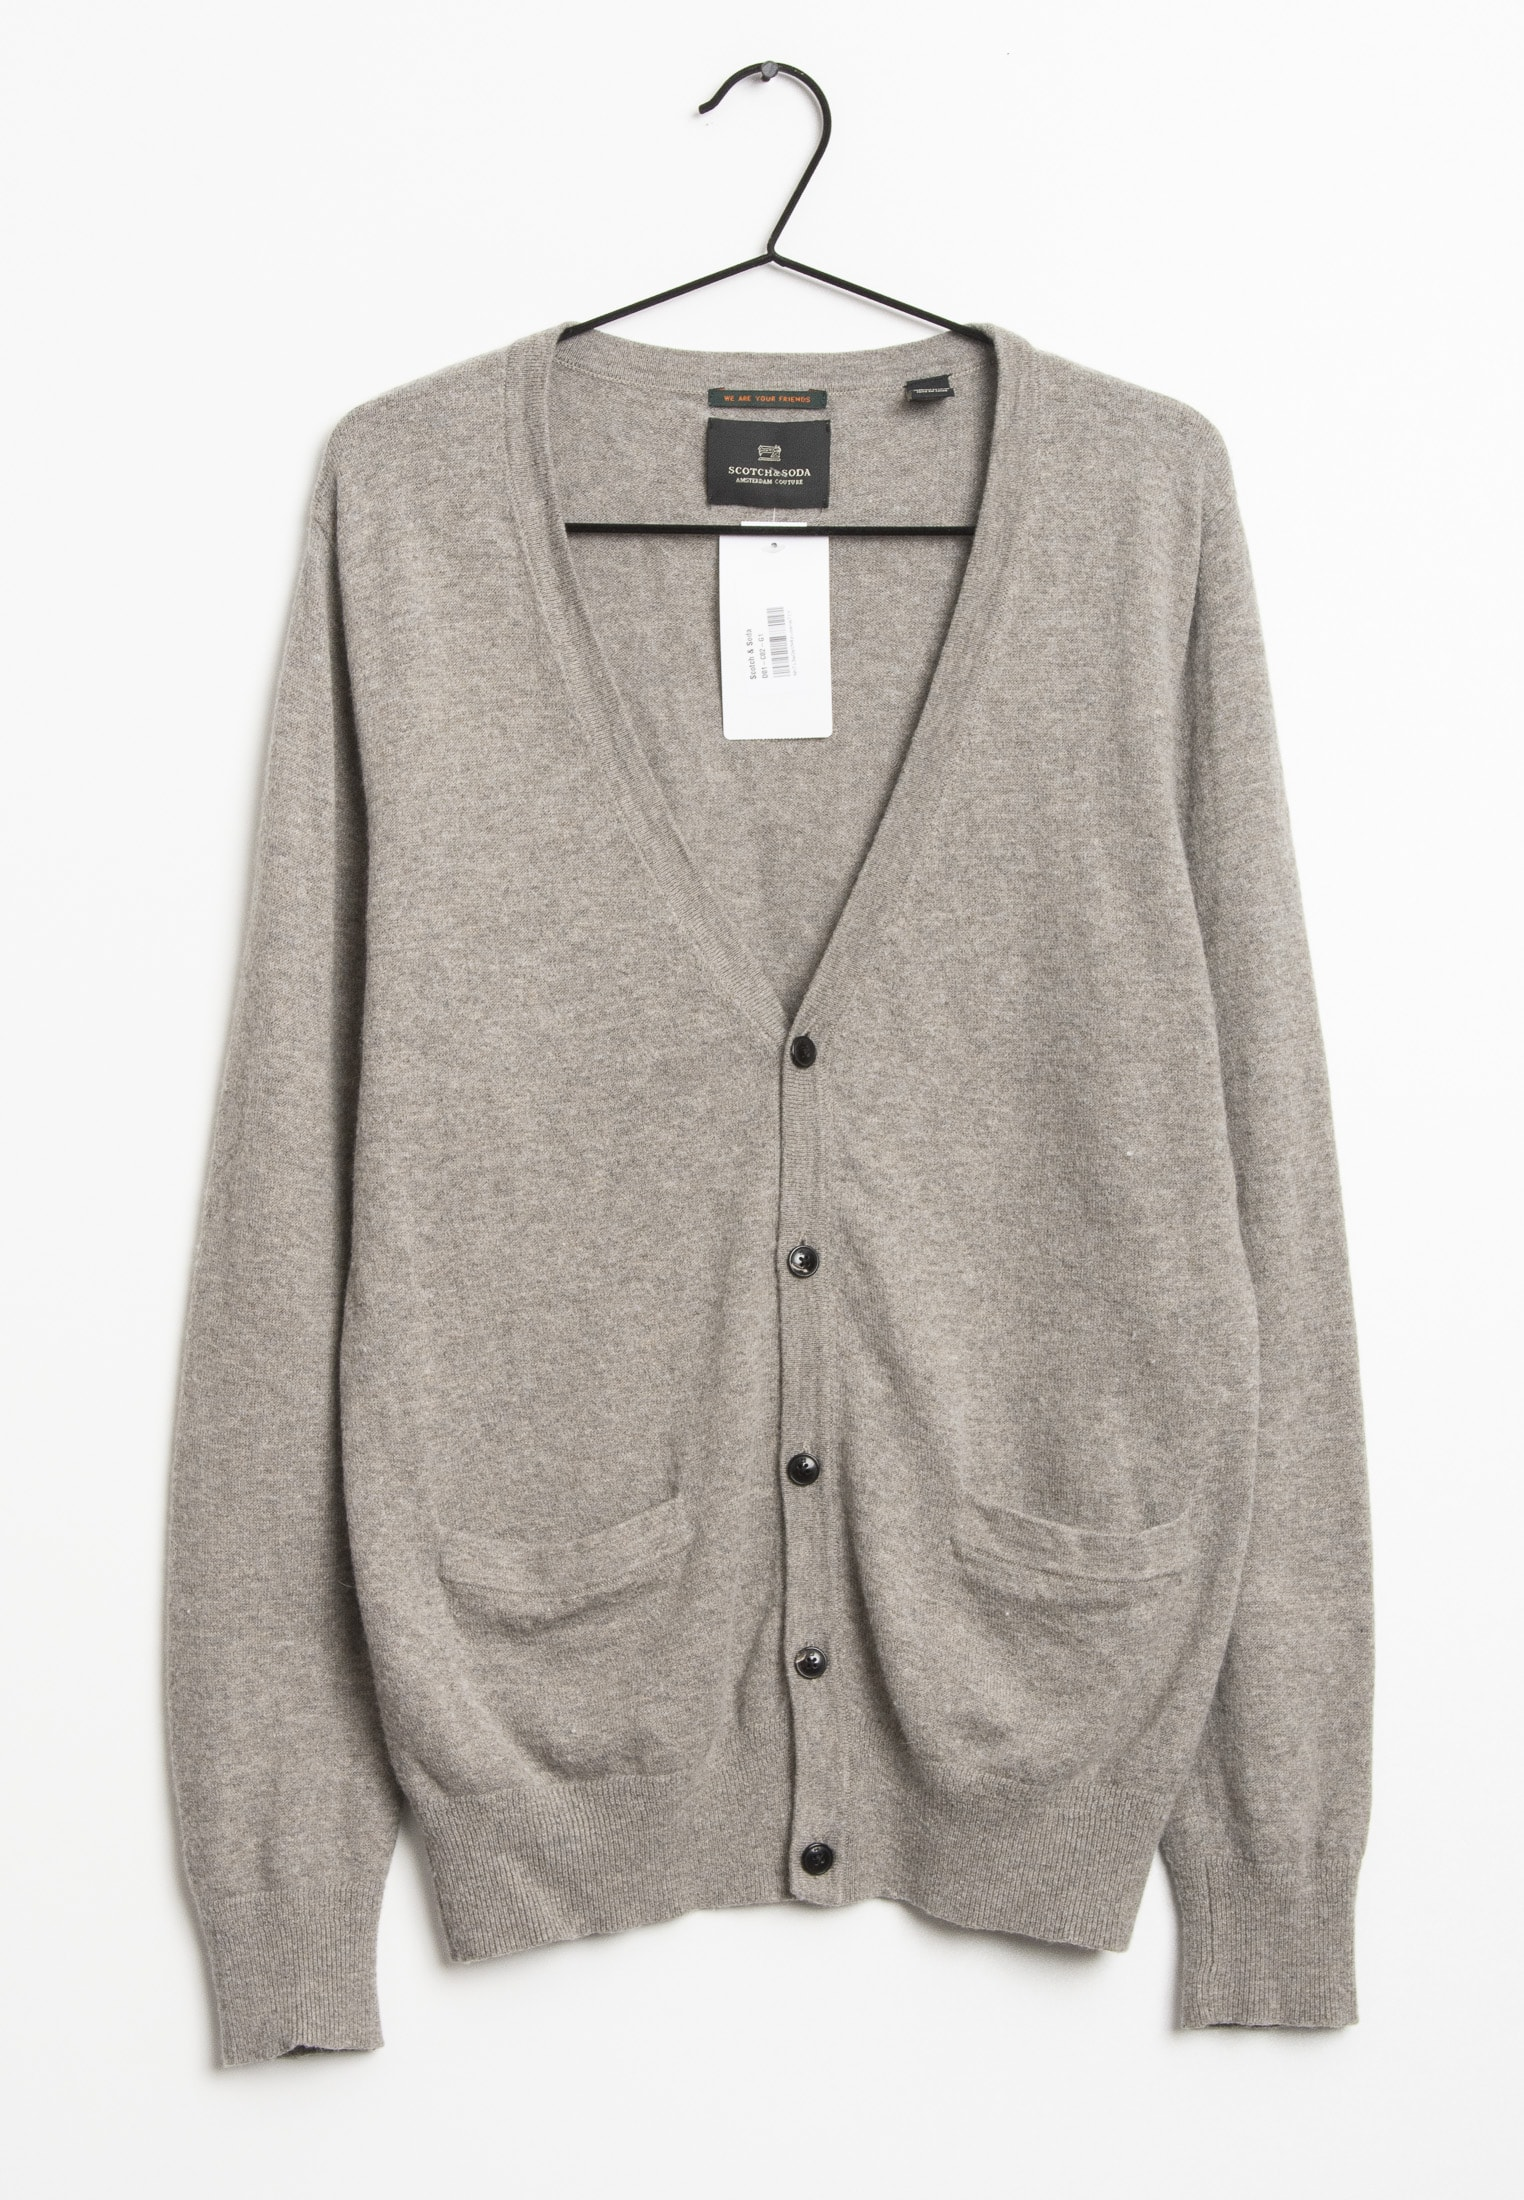 Scotch & Soda cardigan, grå, L